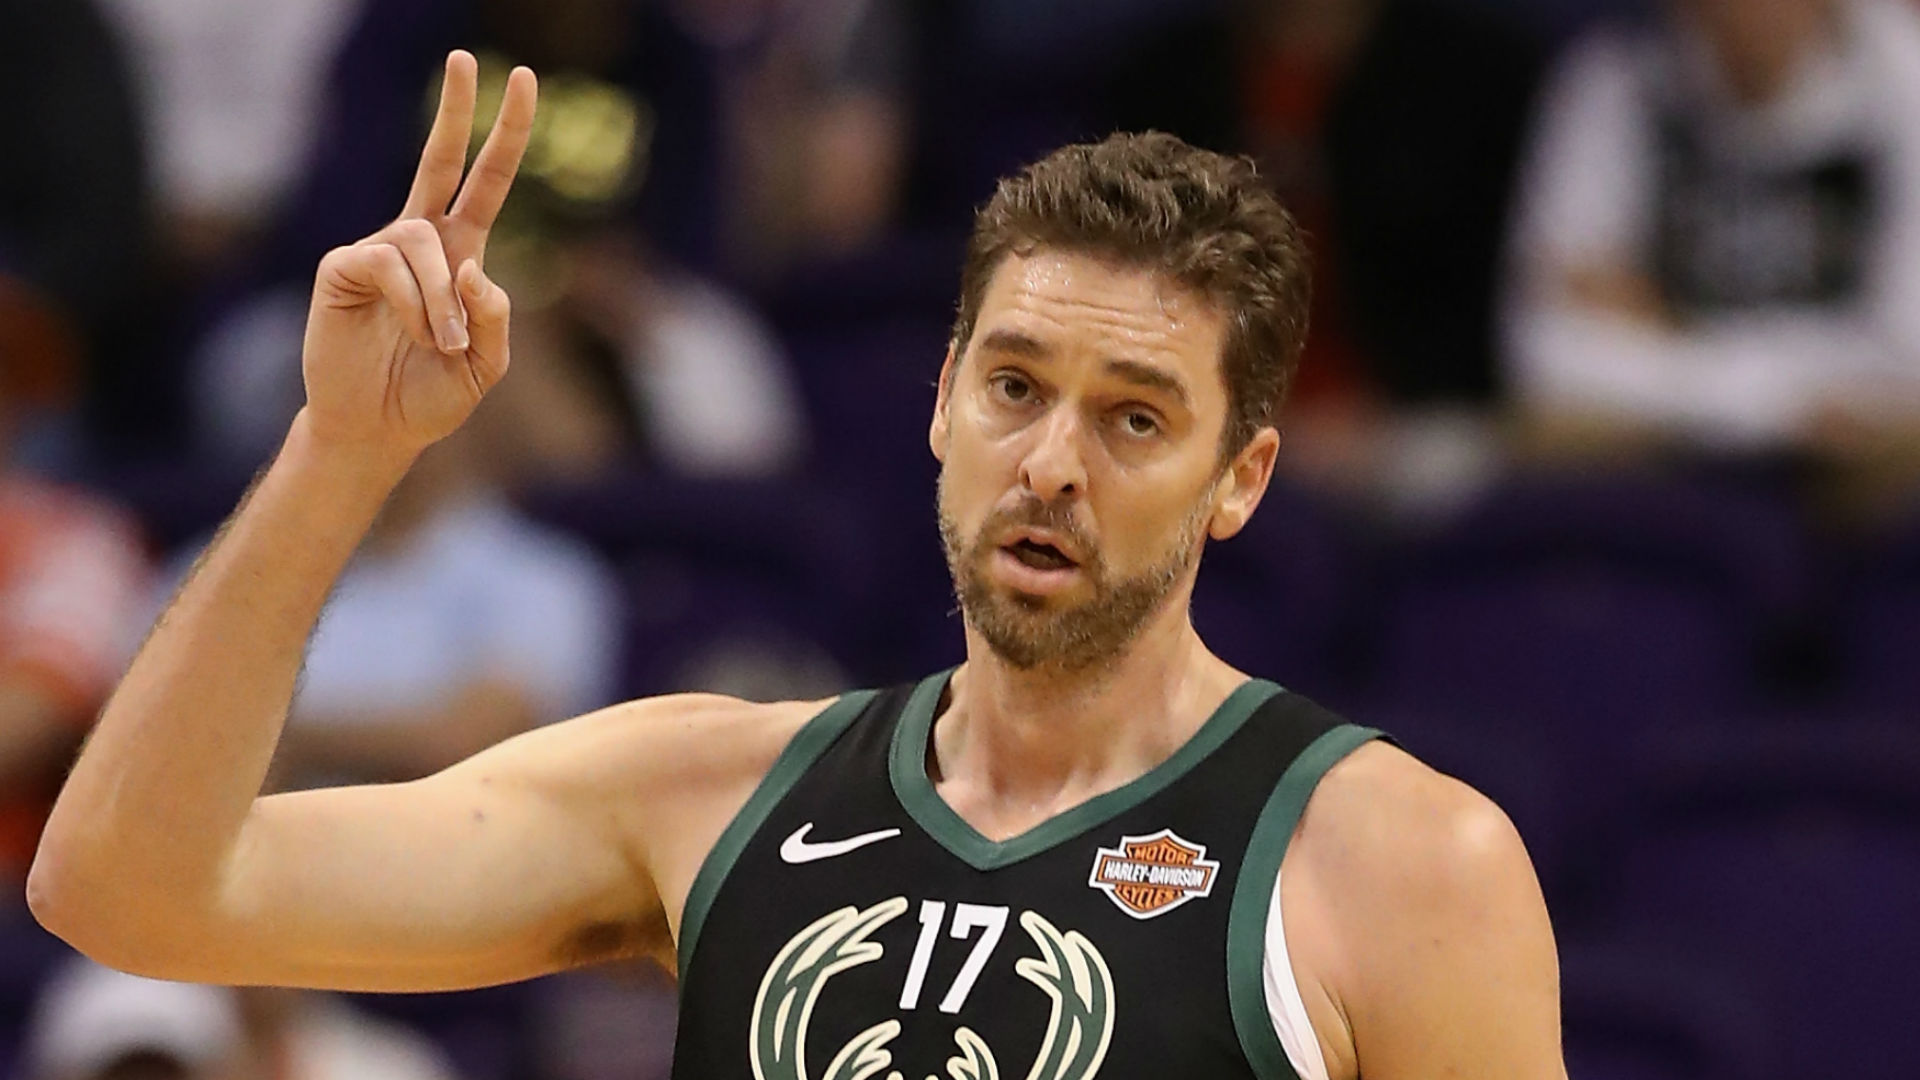 NBA free agency rumors: Trail Blazers add frontcourt depth, sign veteran Pau Gasol